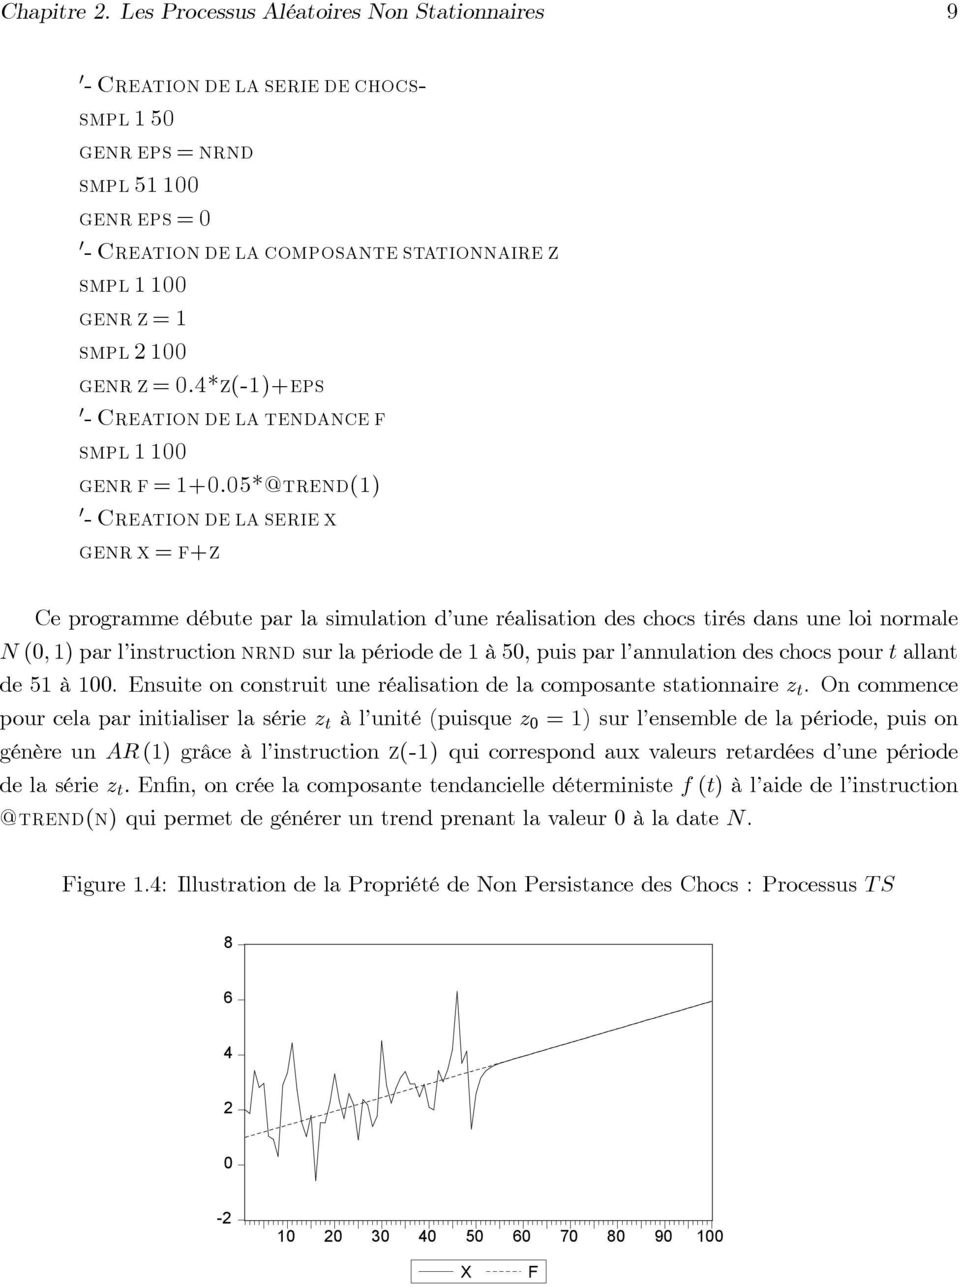 z =.4*z(-1)+eps - Creation de la tendance f smpl 1 1 genr f =1+.